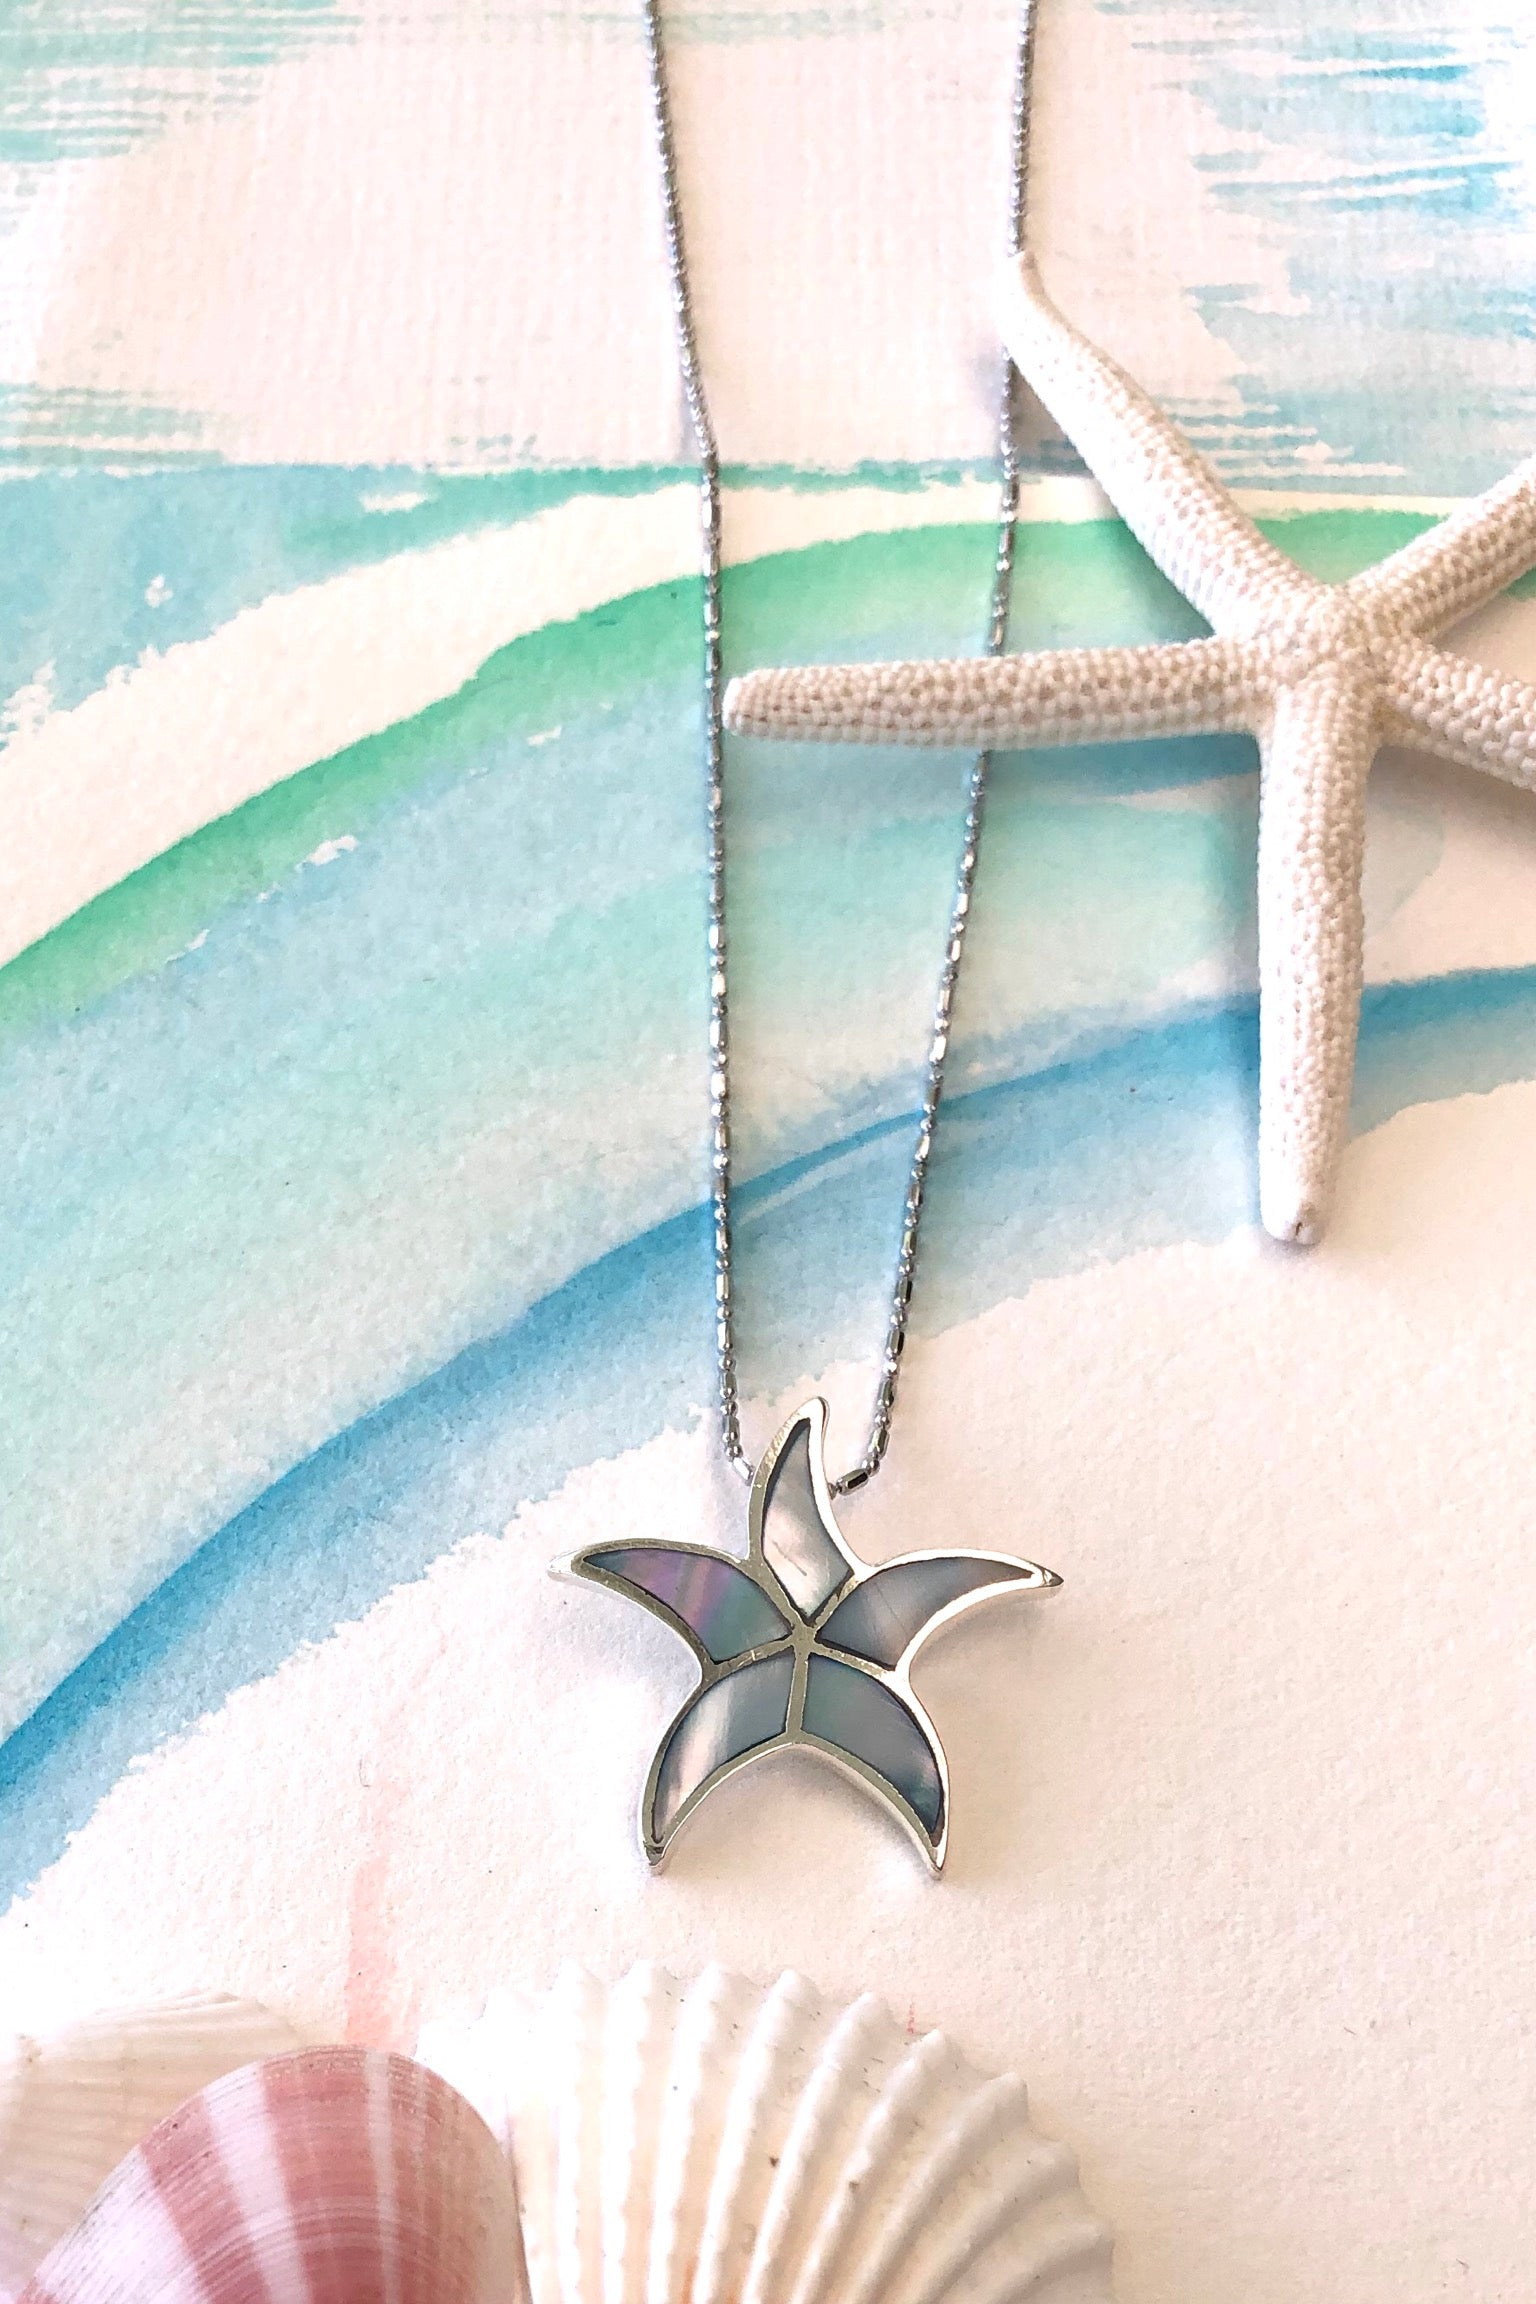 Oracle Silver Seas Pendant Starfish Inlay on chain, bohemian jewellery, 925 silver, mother of pearl.